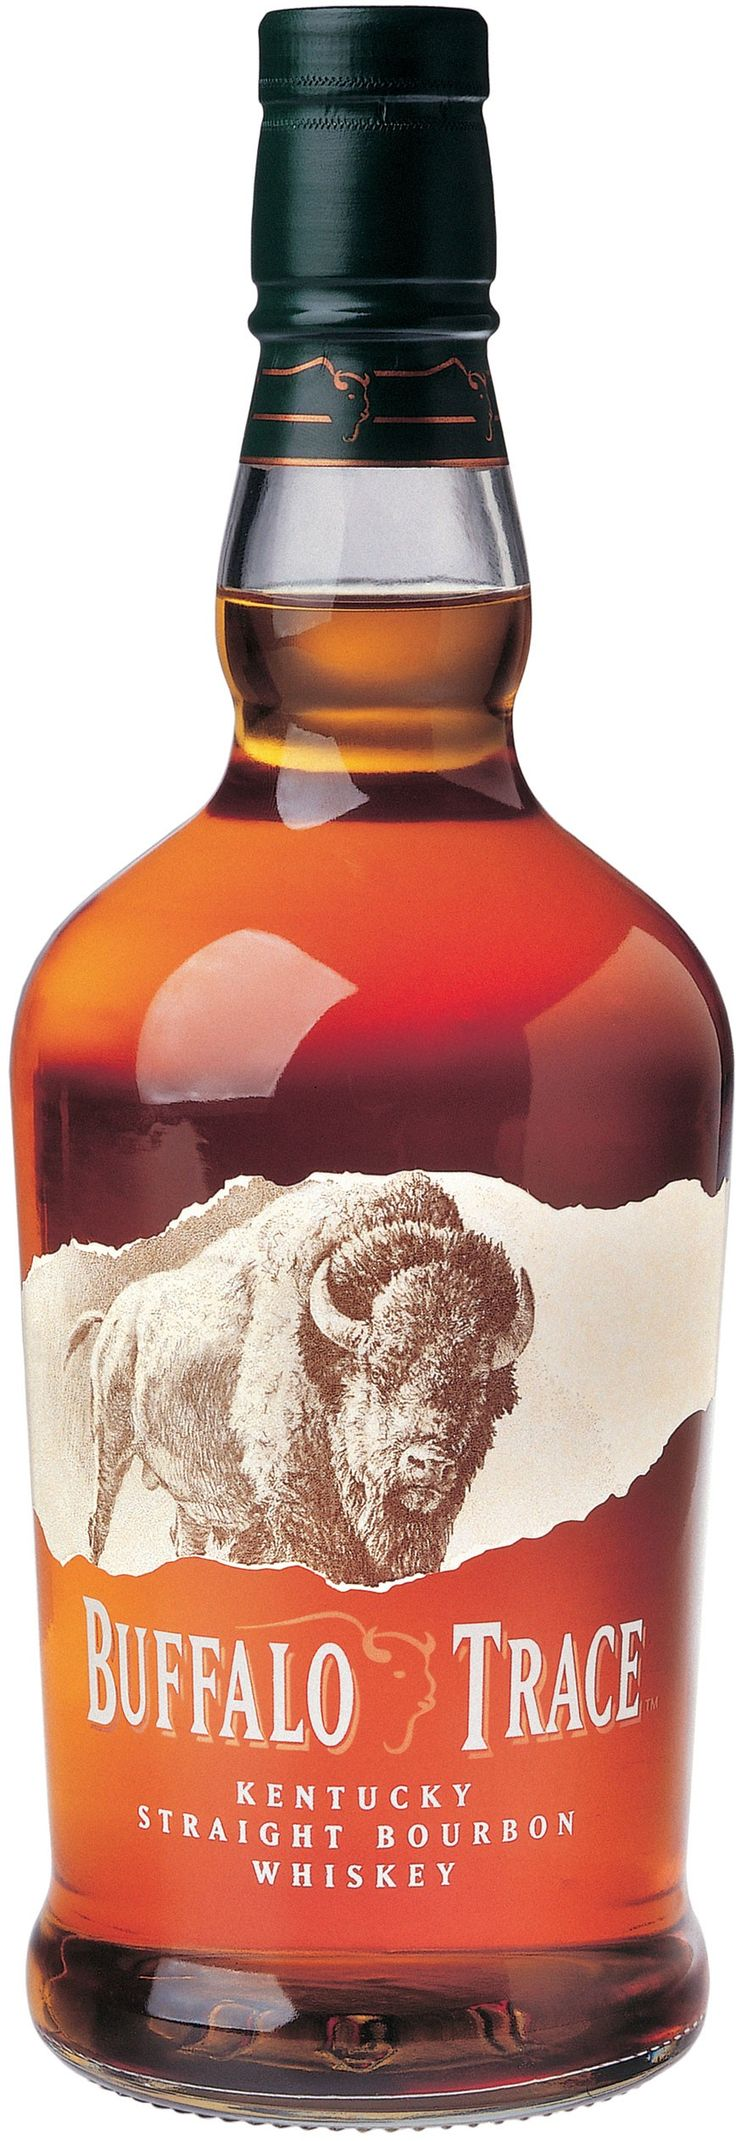 Buffalo Trace Bourbon: A definite must-have for any Bourbon lover.